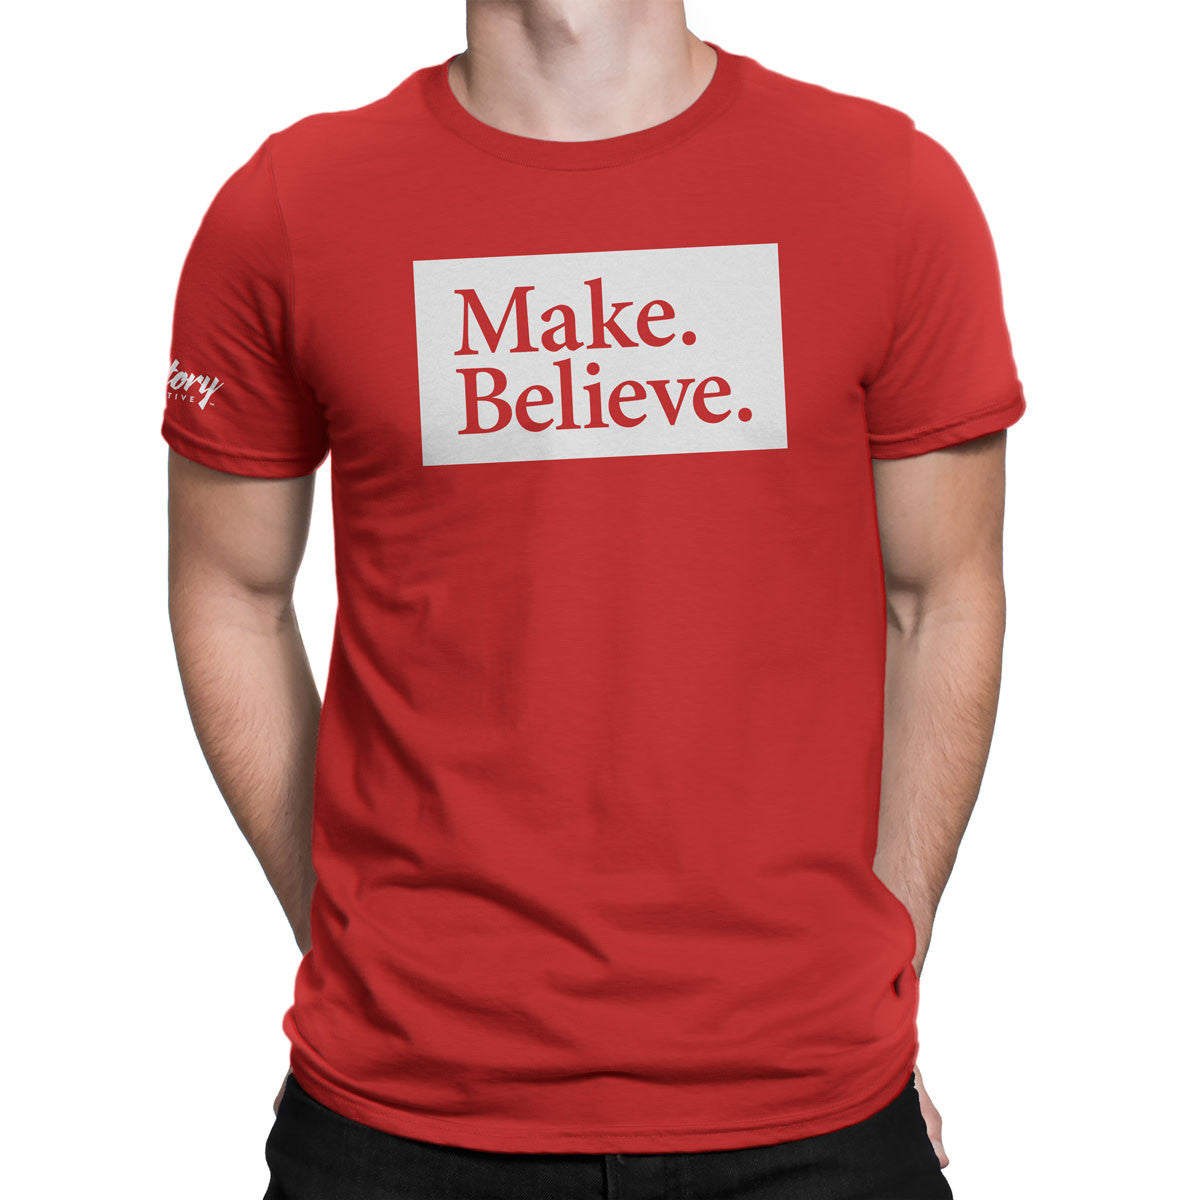 Make. Believe. — Men's T-Shirt (Red)